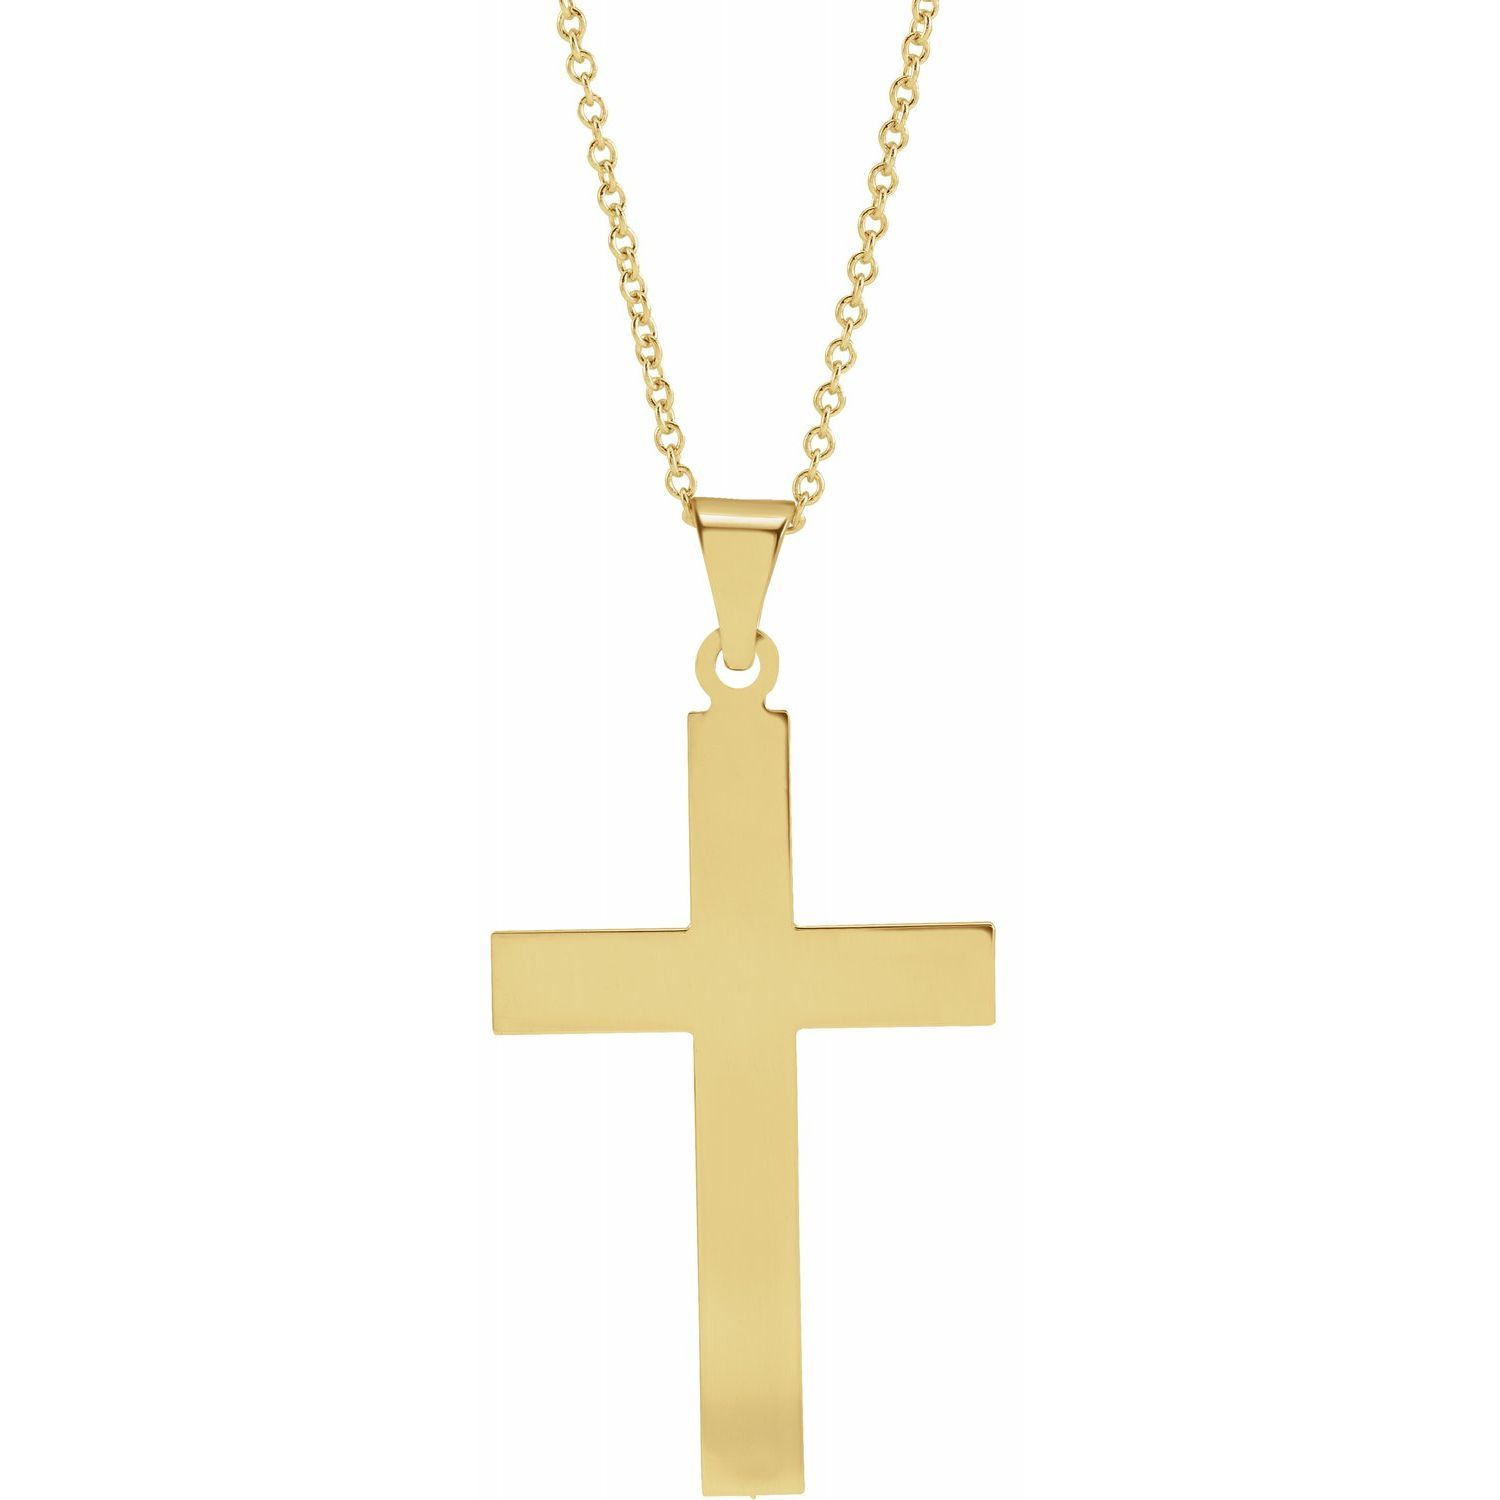 14K Yellow 28 x 18 mm Cross Necklace